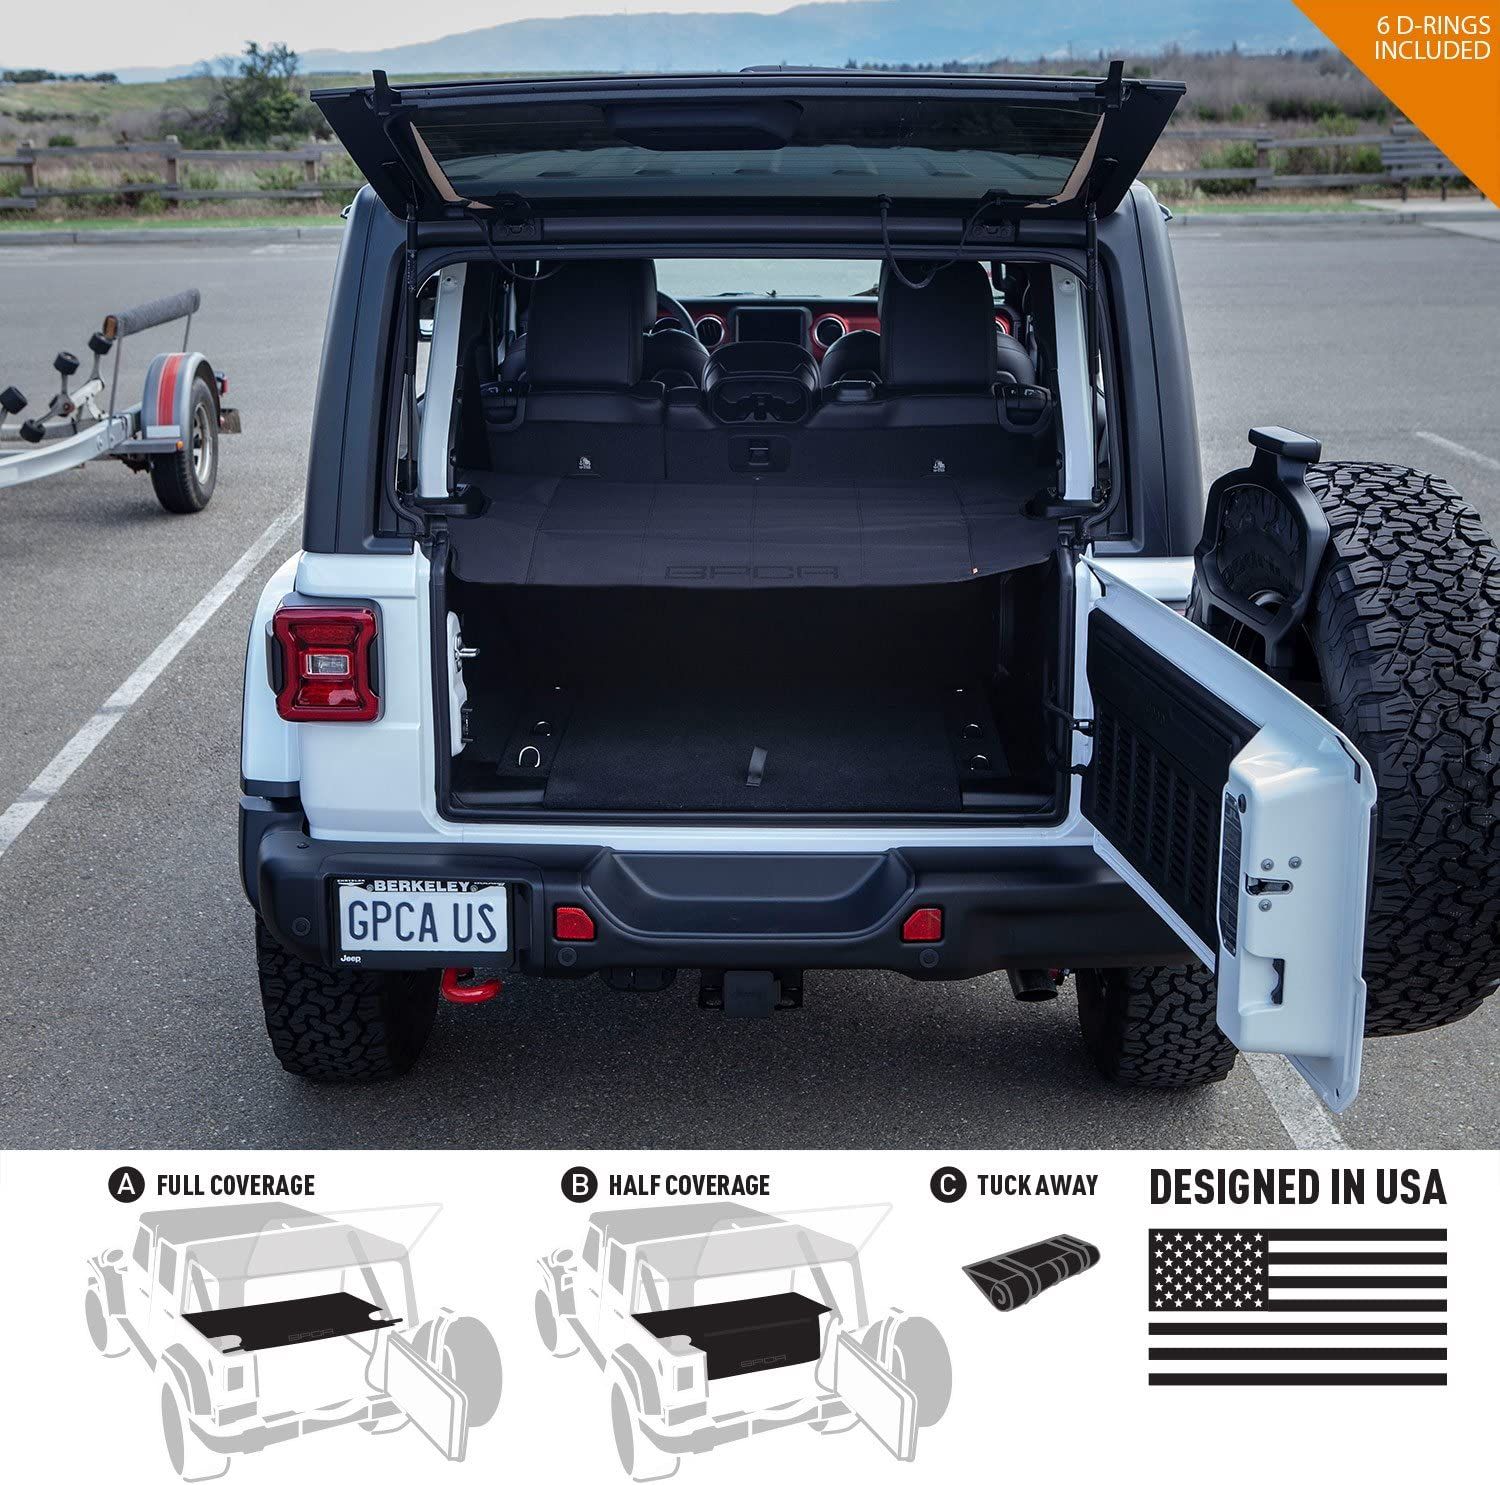 Amazon Com Gpca Cargo Cover Lite Compatible With Wrangler Jl 4dr Sport Sahara Rubicon Unlimited 2018 2021 Under Hardtop Automotive